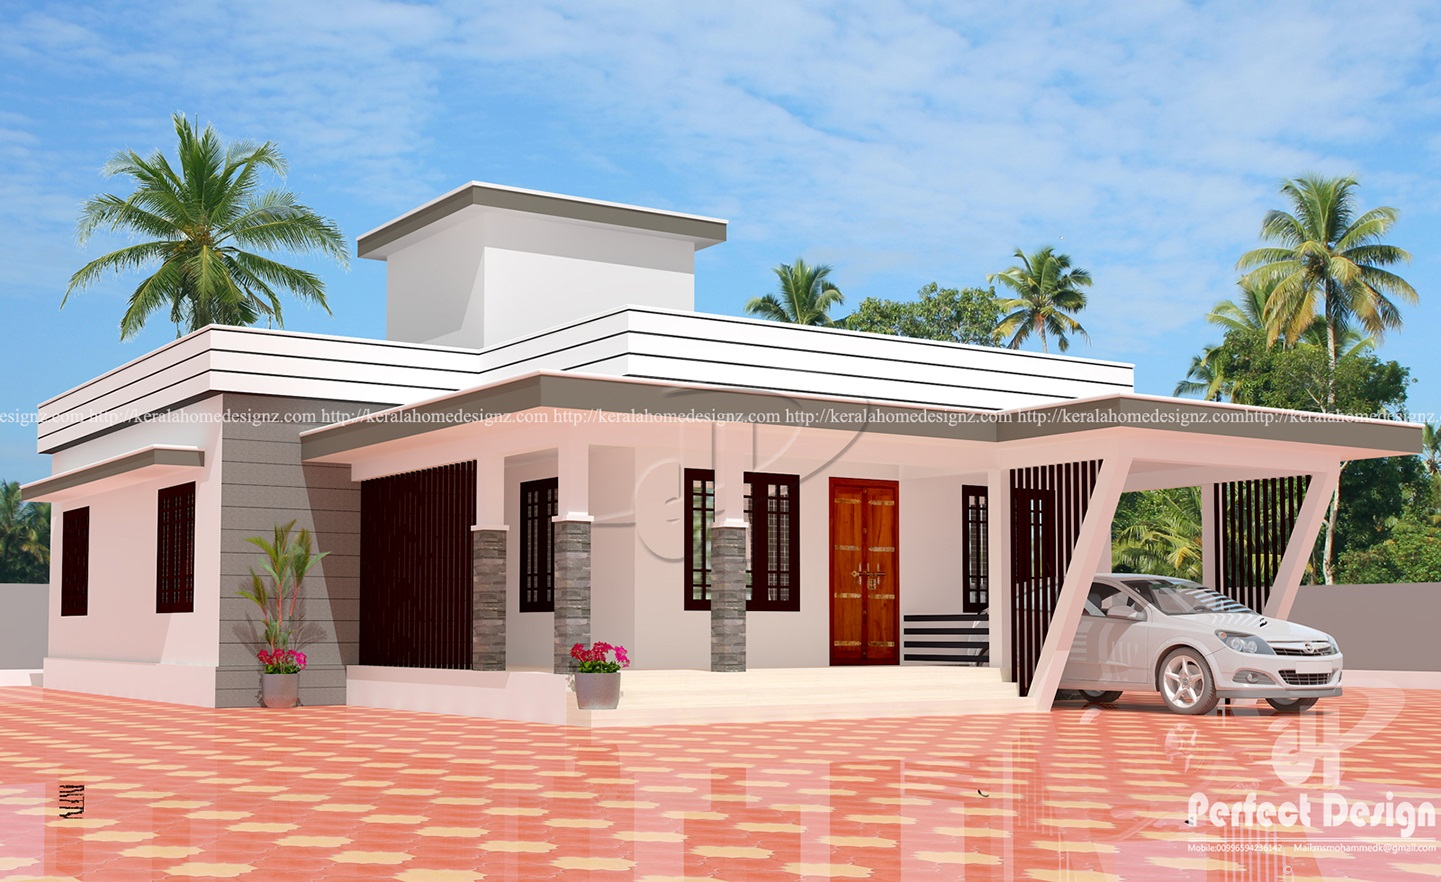 3 bedroom modern flat roof house layout kerala home design for Modern 3 bedroom house